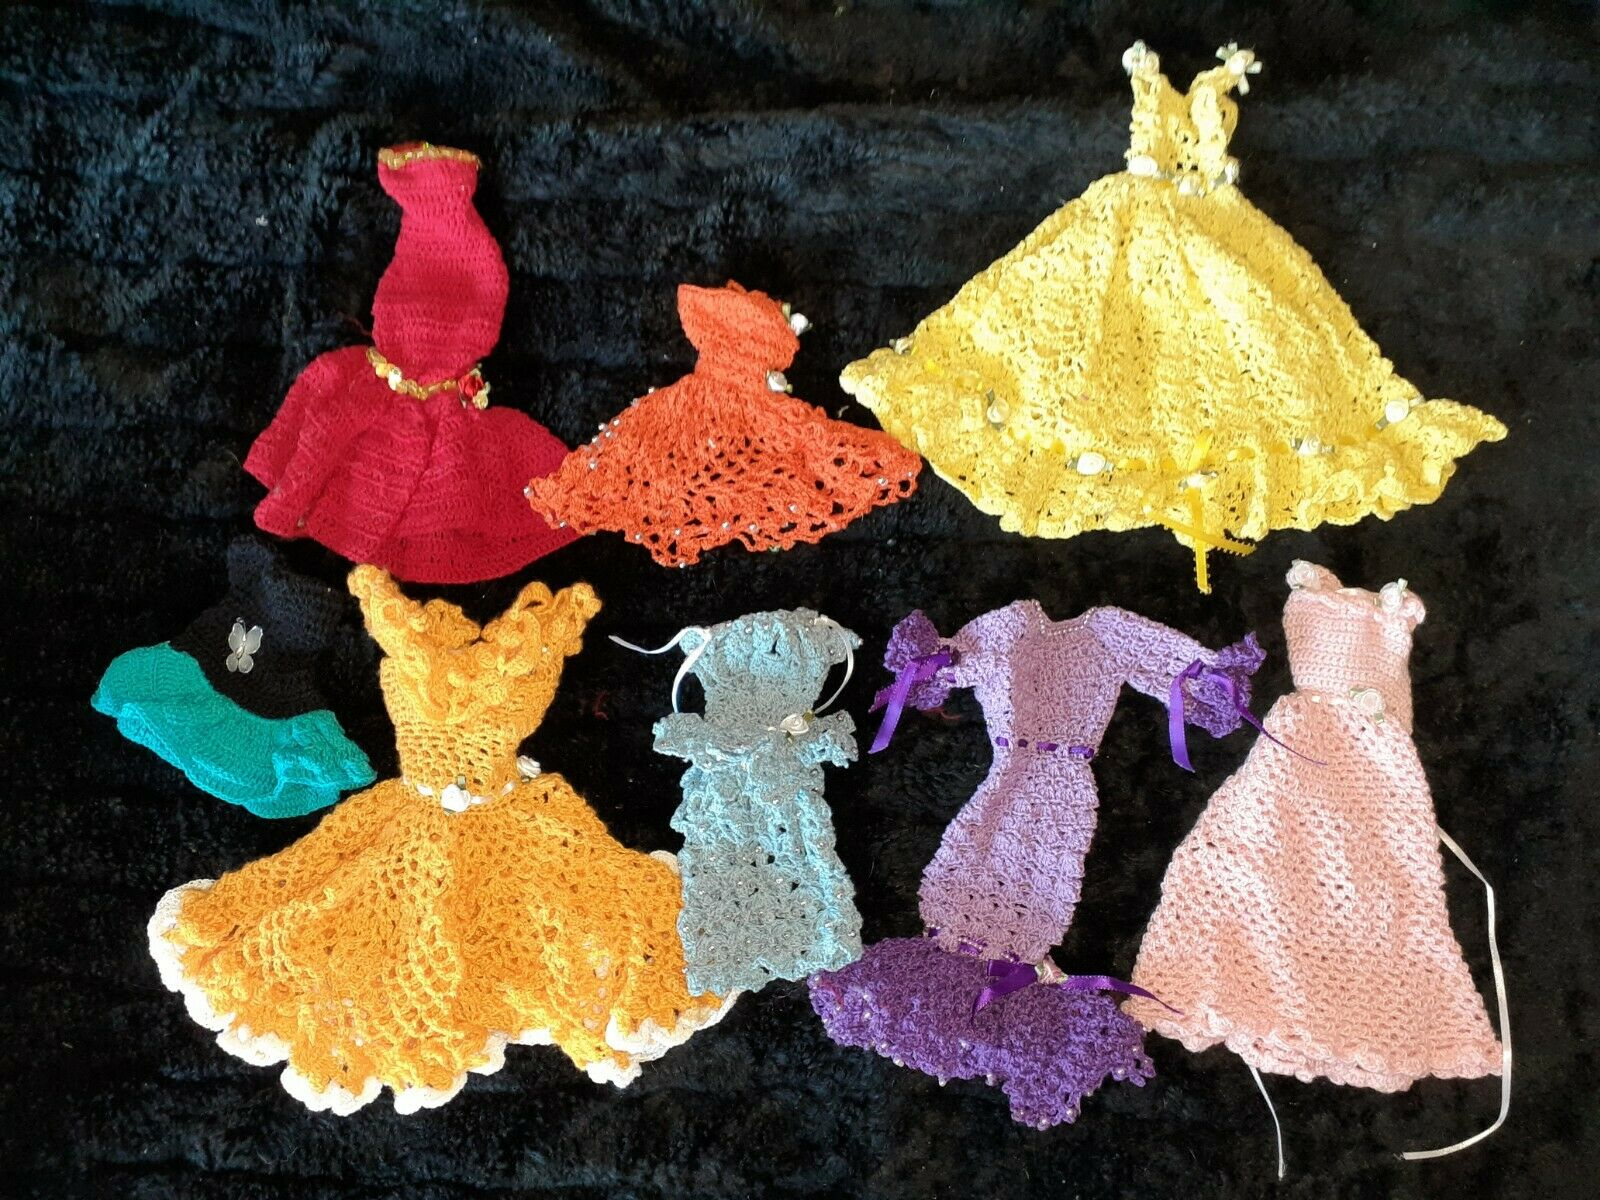 8 Beautiful Handmade Crocheted Barbie Doll Dresses/clothes - $49.99